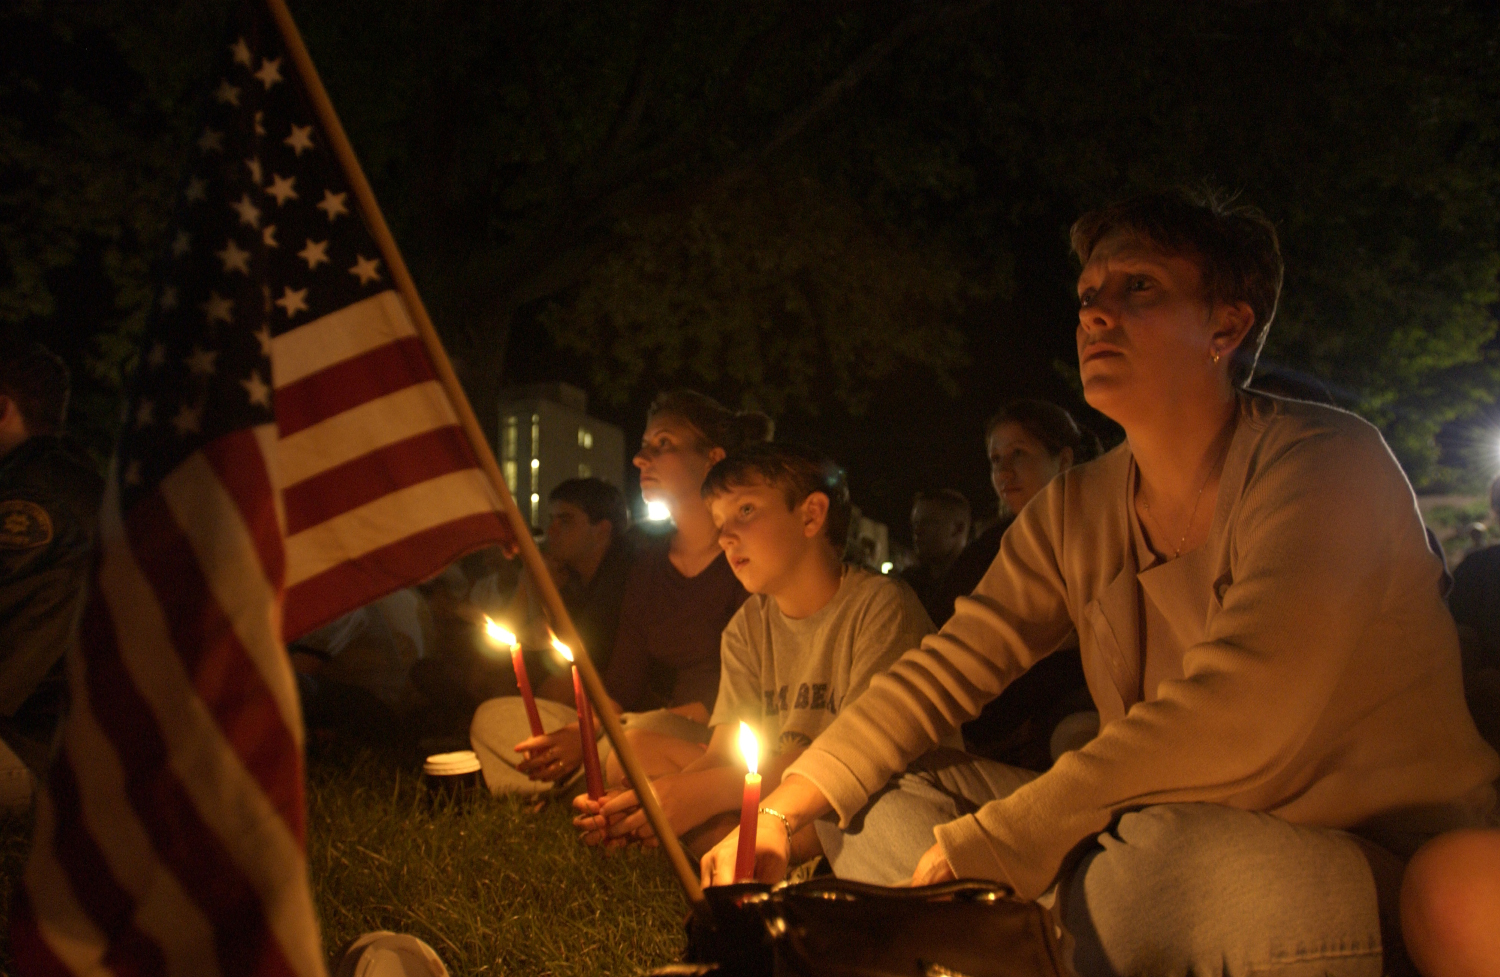 A campus in mourning, but not at standstill